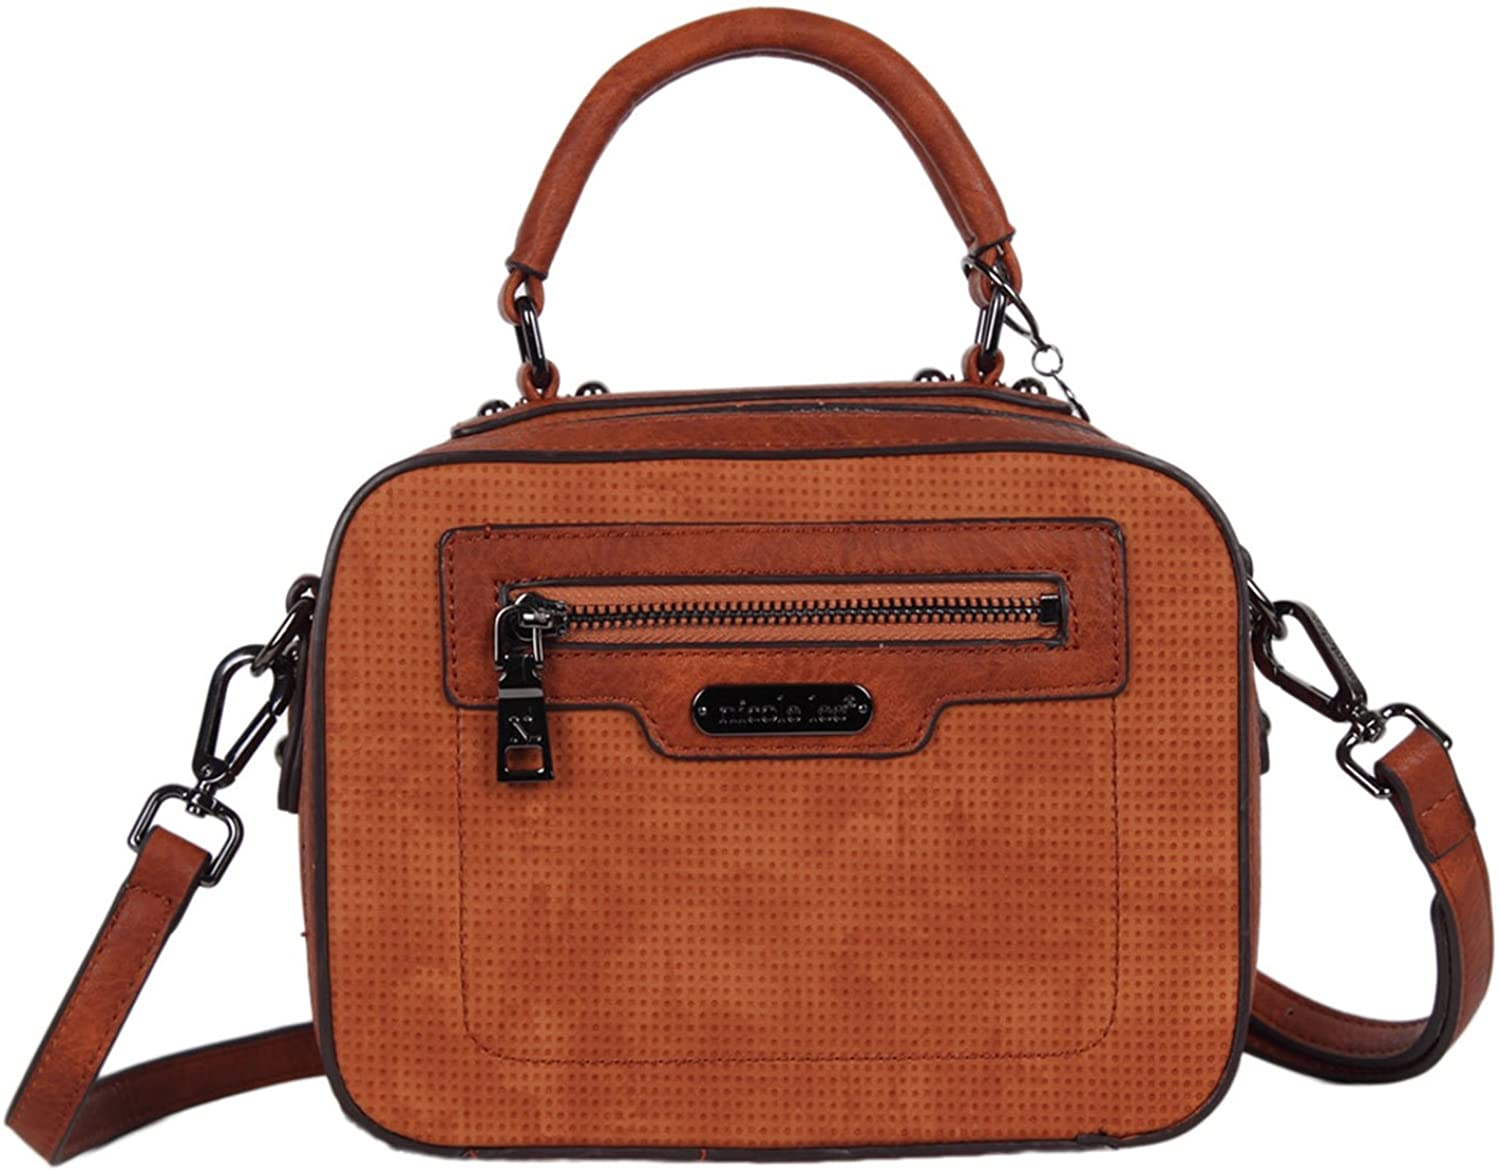 Crossbody Bag with Front Zip Pocket and Adjustable/Detachable Shoulder Strap by Nicole Lee